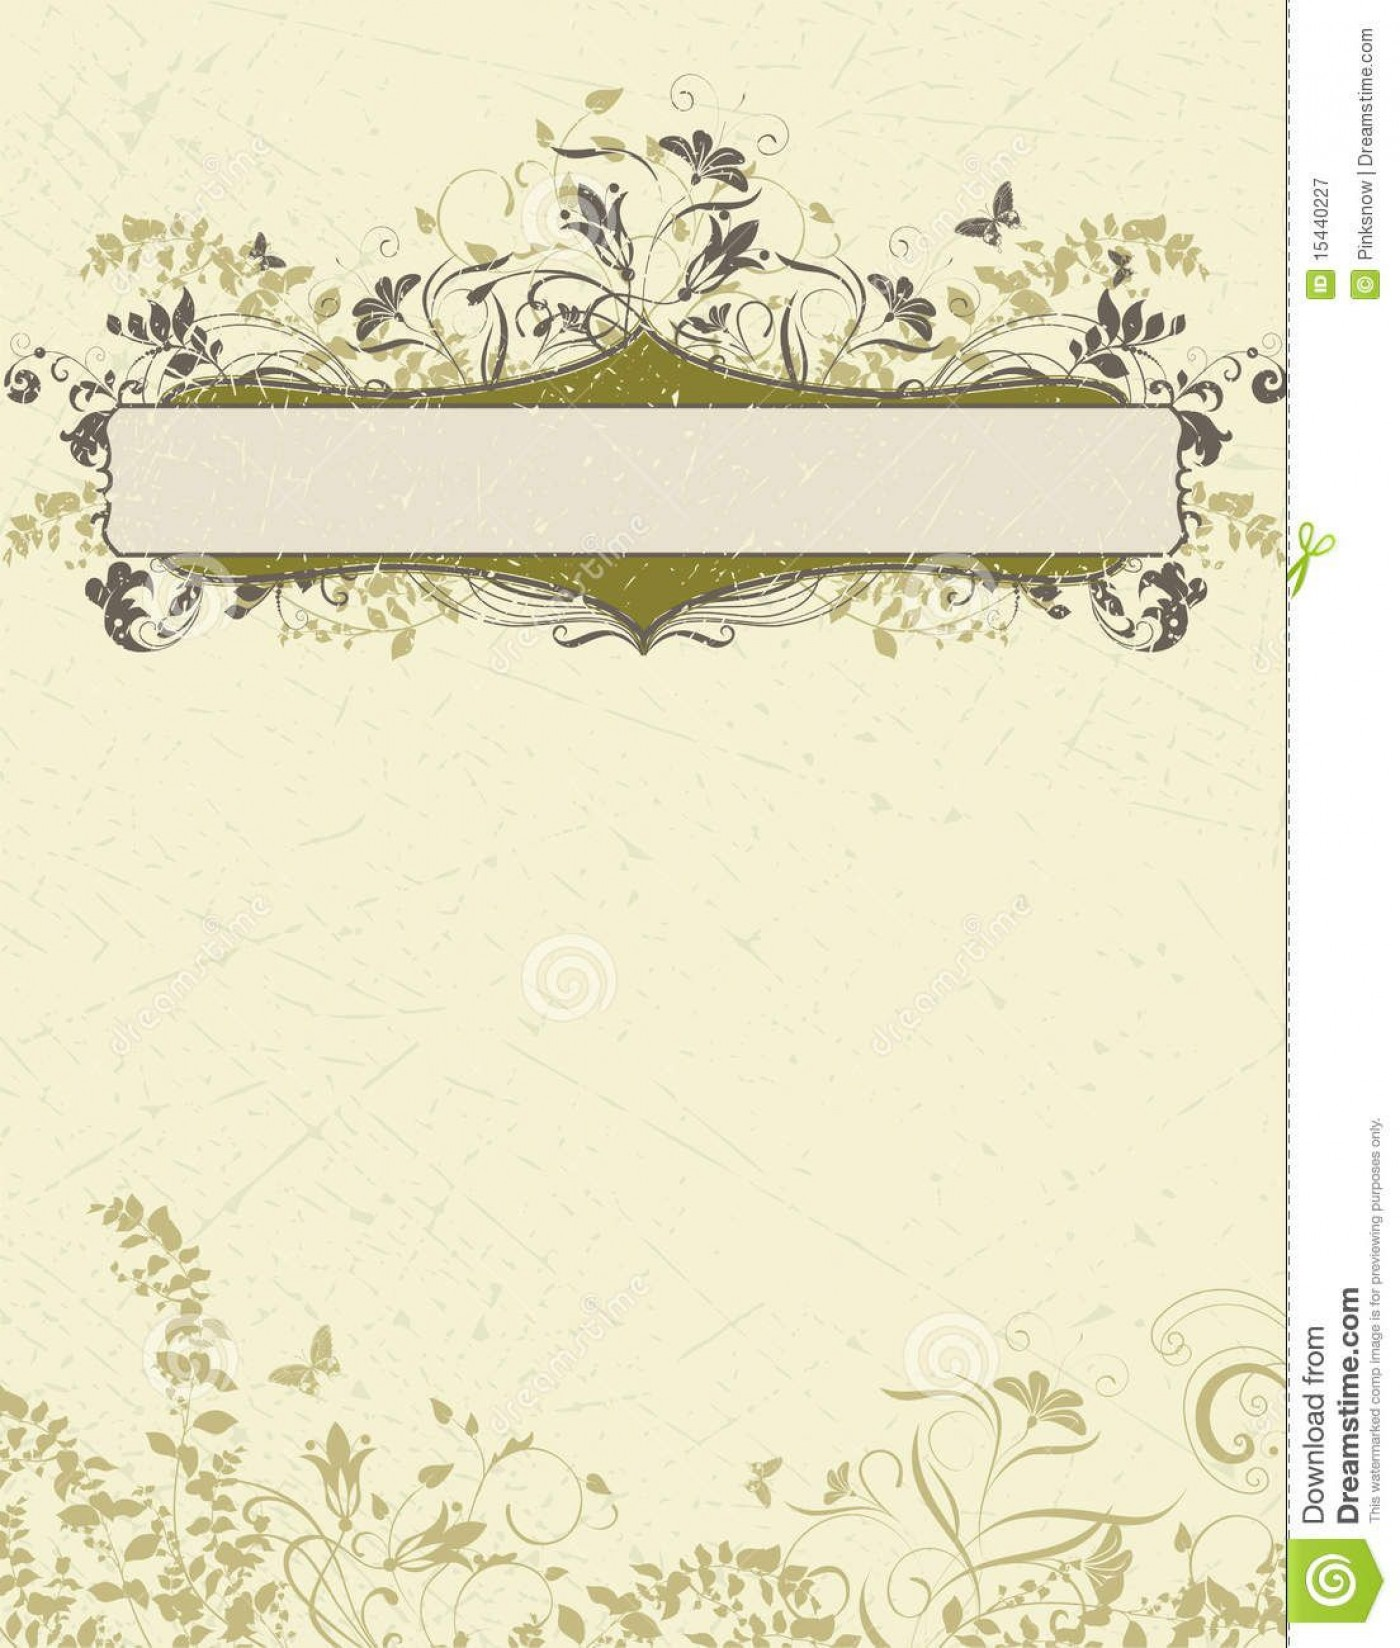 008 Fantastic Free Download Invitation Card Template Design  Wedding Software For Pc Psd1400